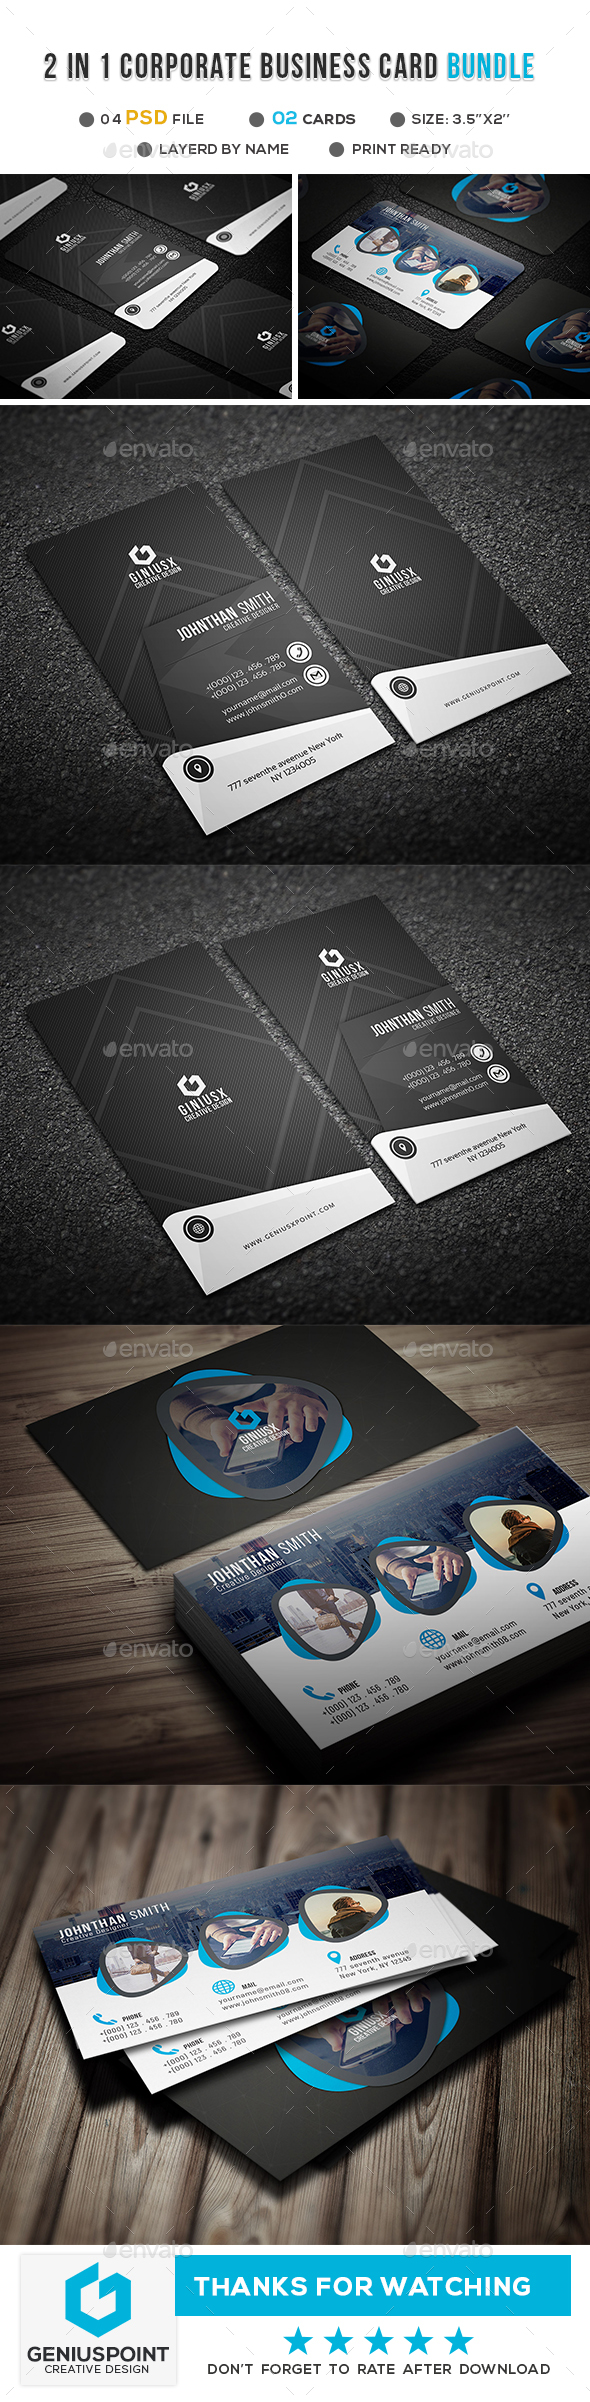 GraphicRiver 2 in 1 Corporate Business Card Bundle 21102296